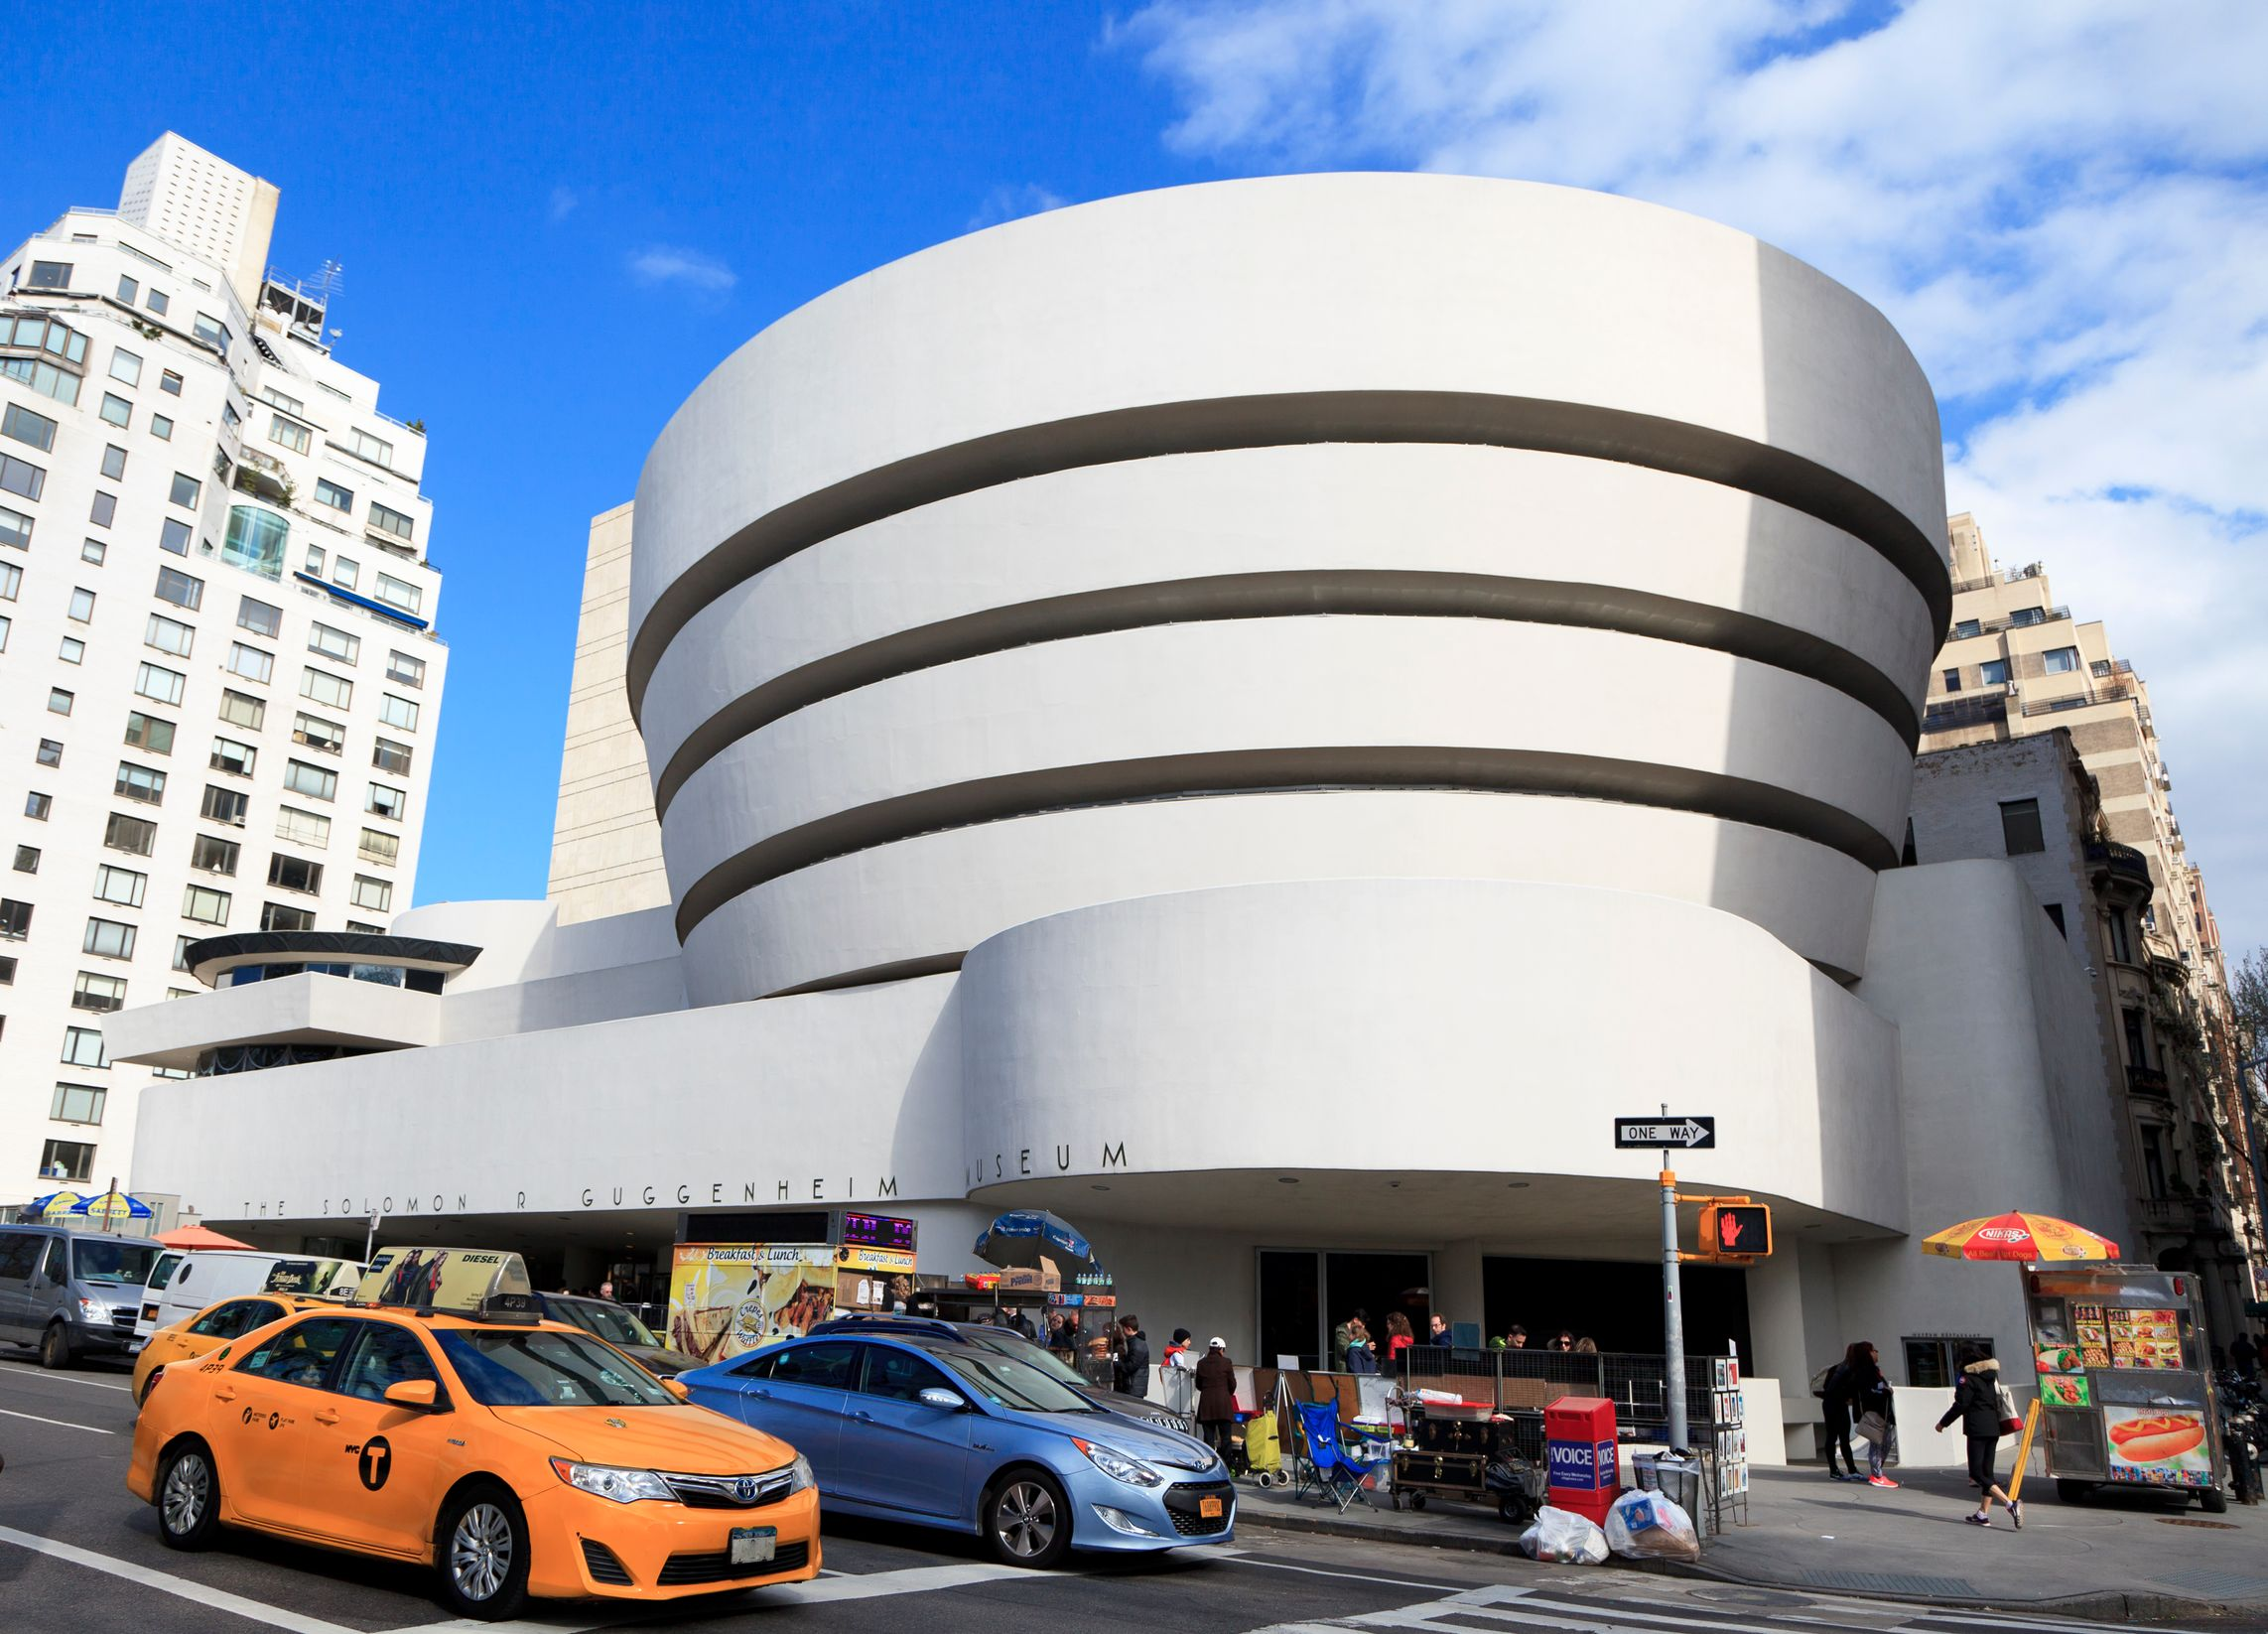 The stunning Guggenheim Museum in New York - ניו יורק